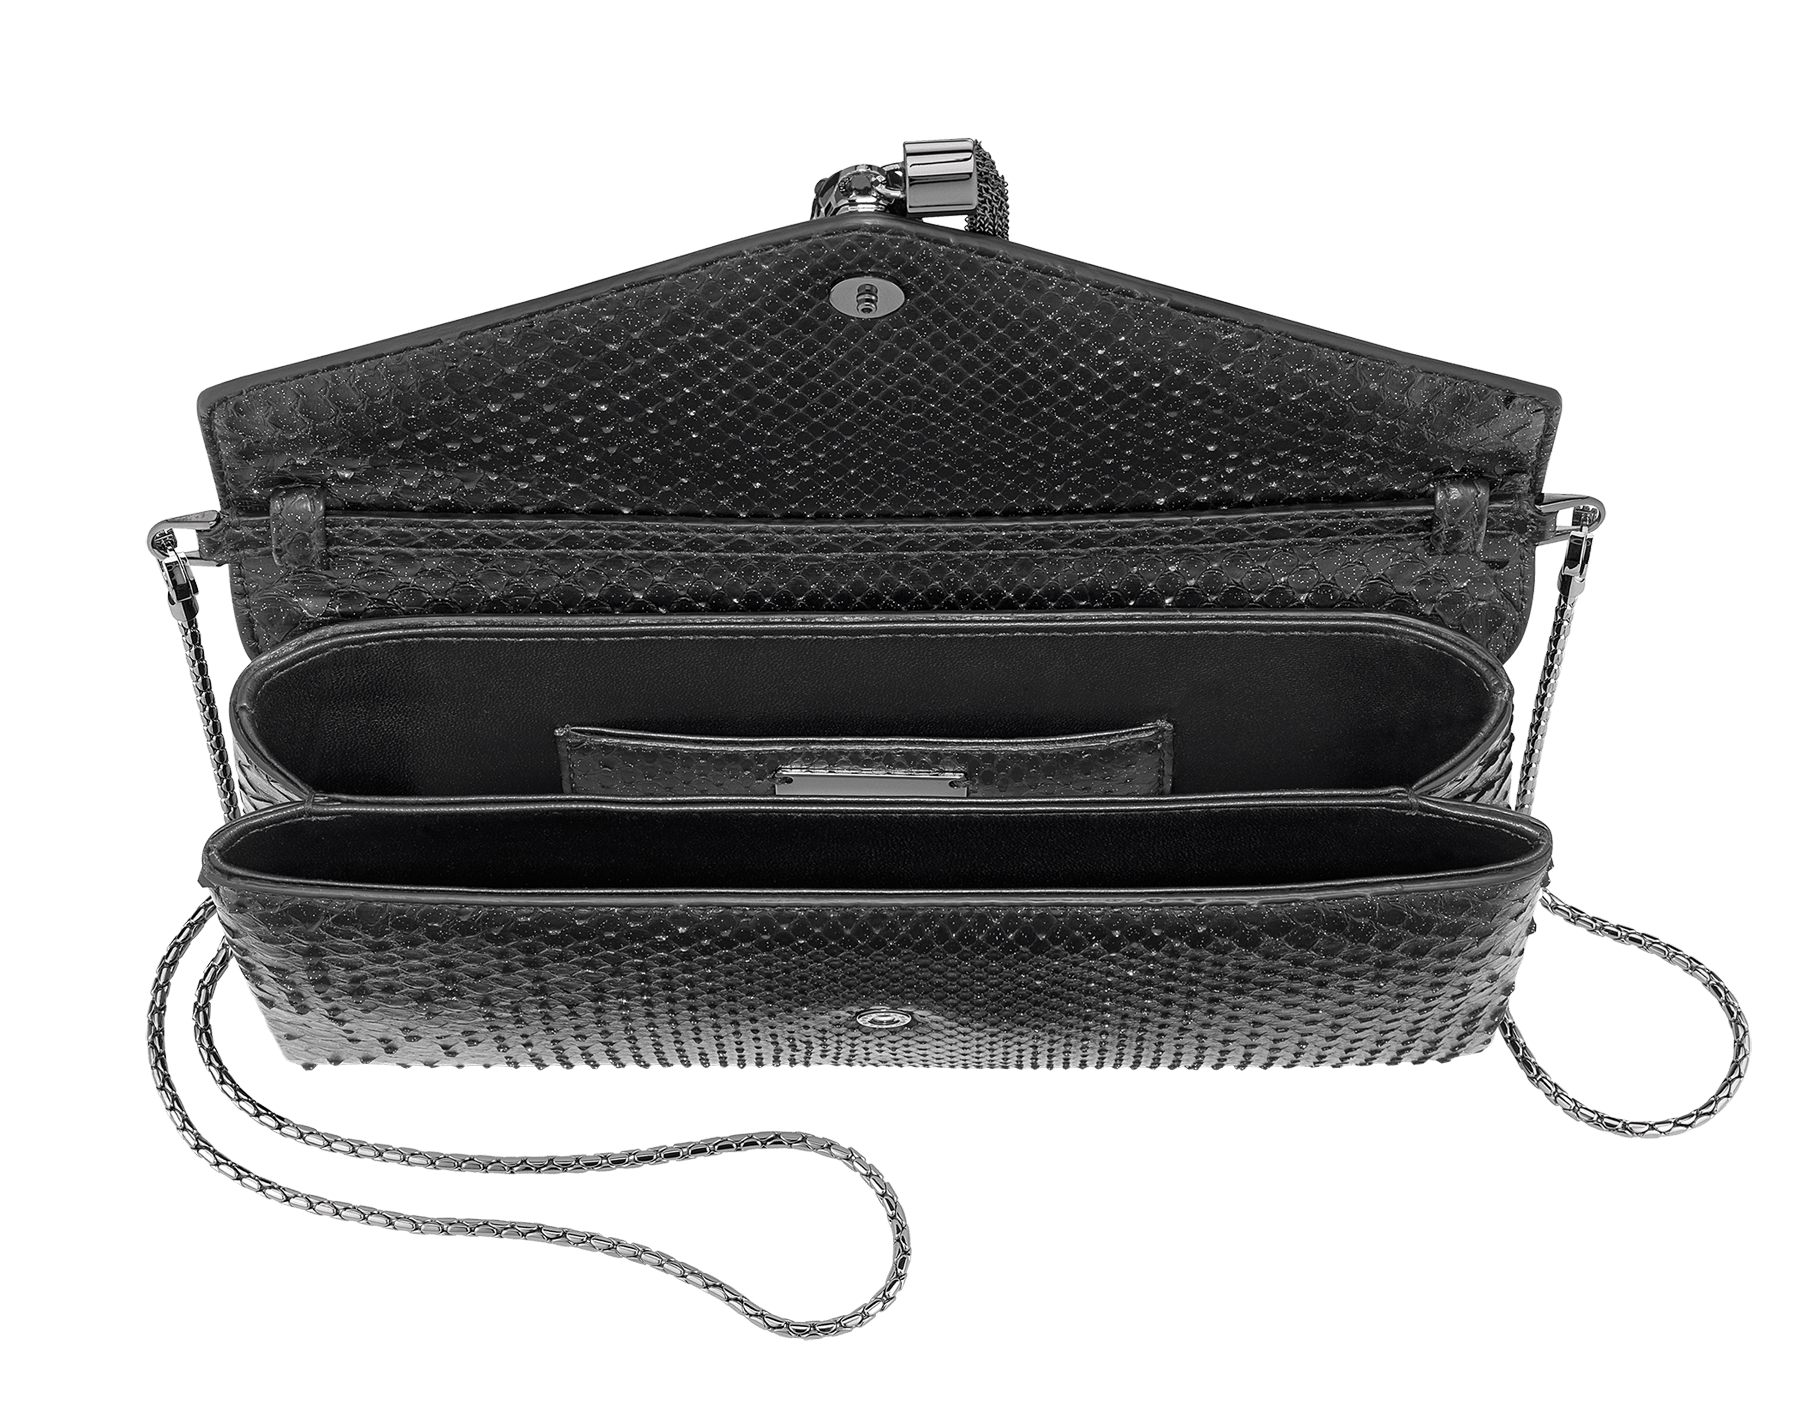 """""""Serpenti"""" evening clutch bag in black Diamond Glam python skin. Iconic snake head stud closure with tassel in dark ruthenium plated brass enriched with black shiny enamel and black onyx eyes. 289041 image 4"""